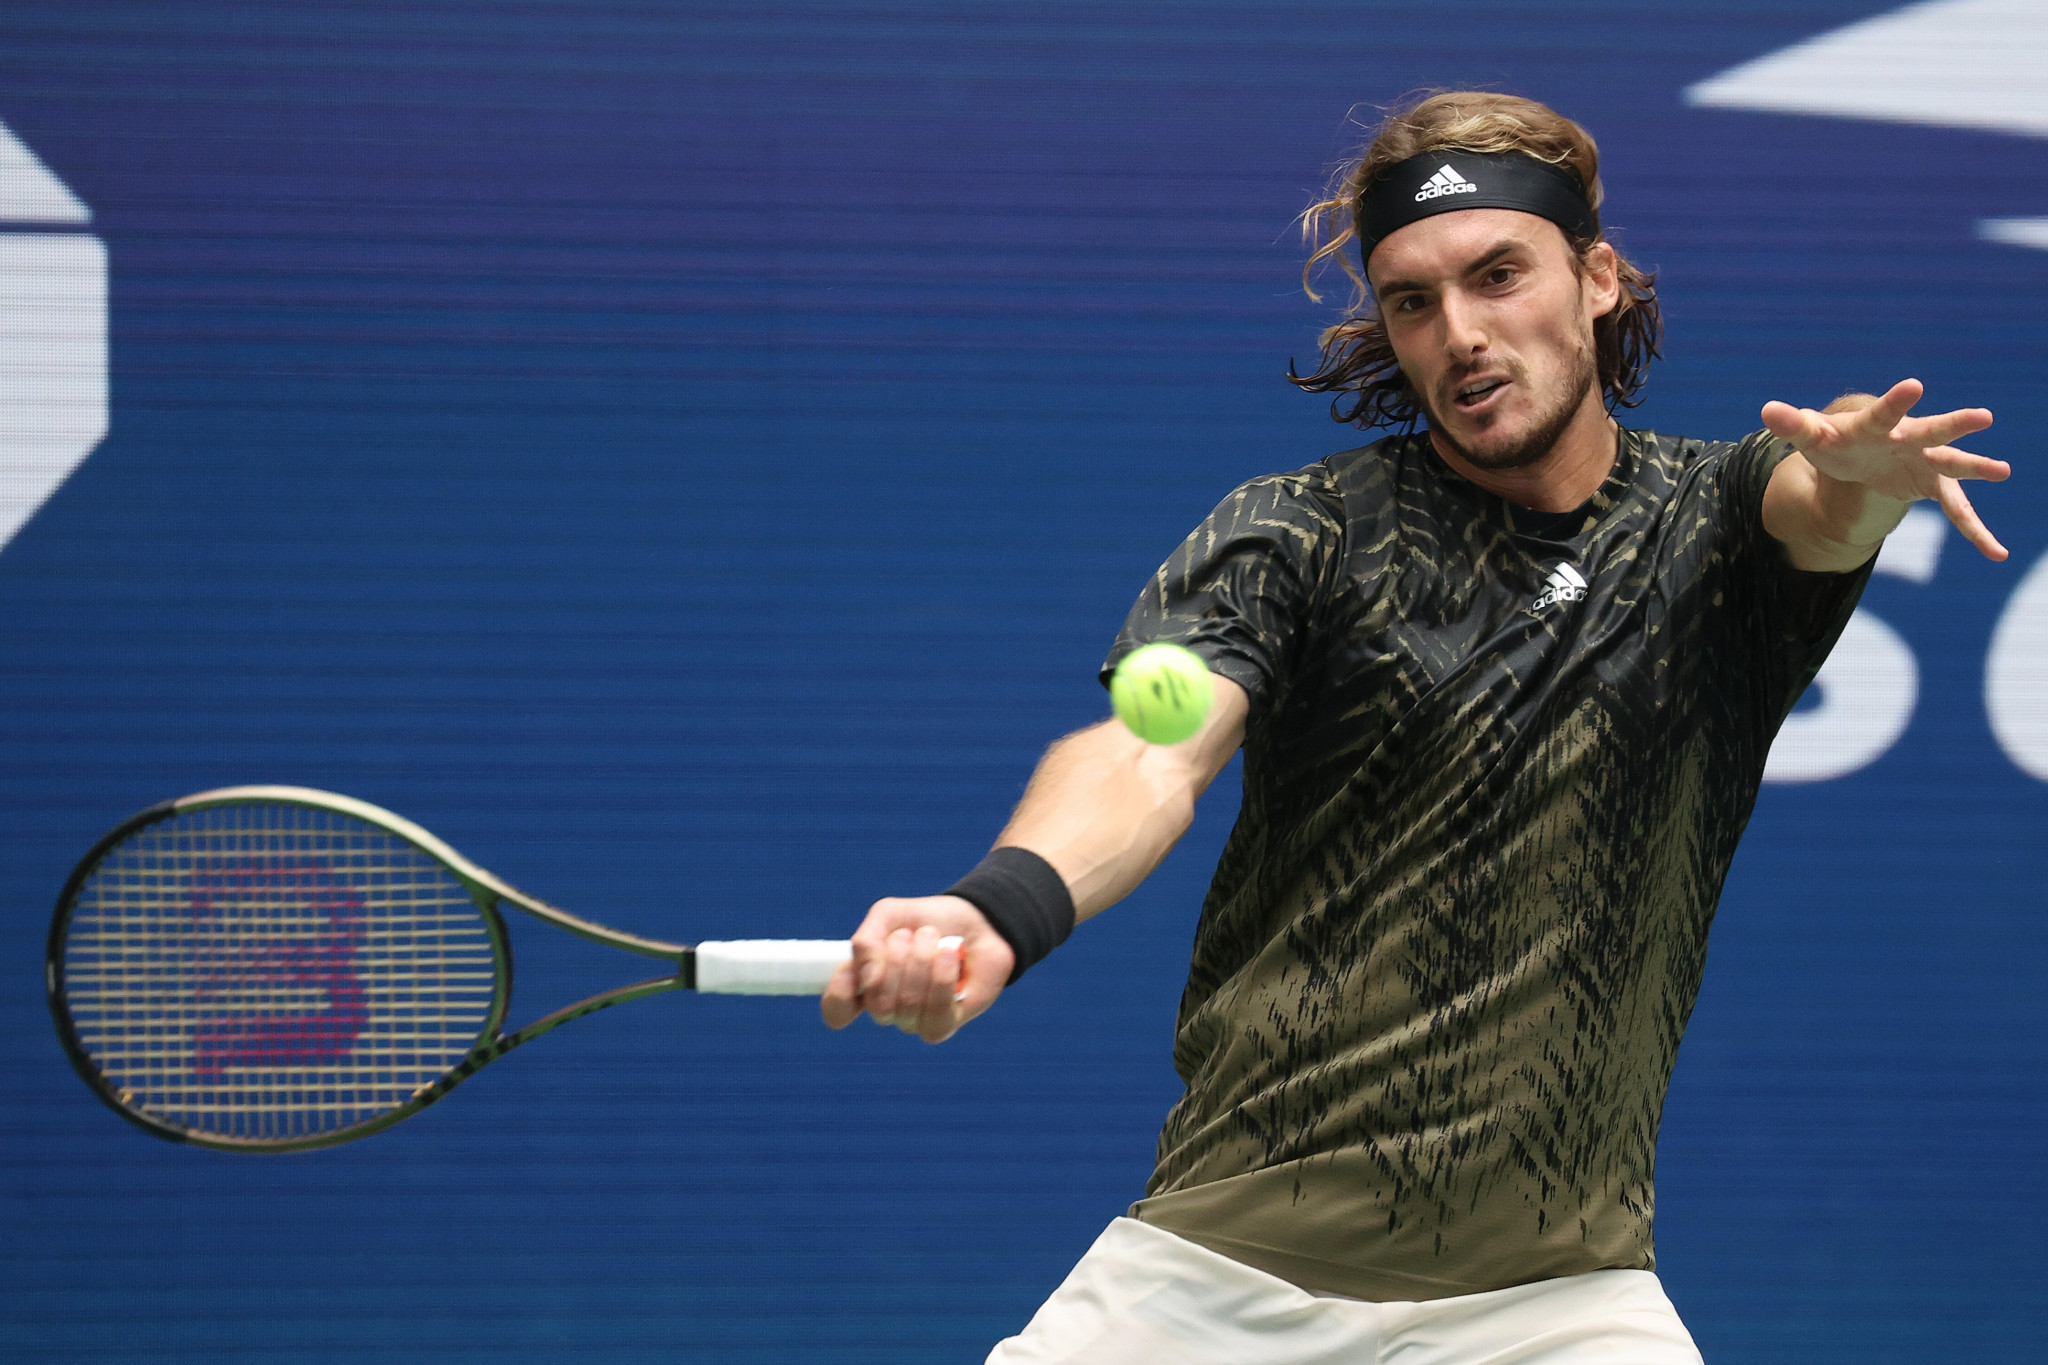 Tsitsipas plans to get vaccinated this year after criticism over reluctance